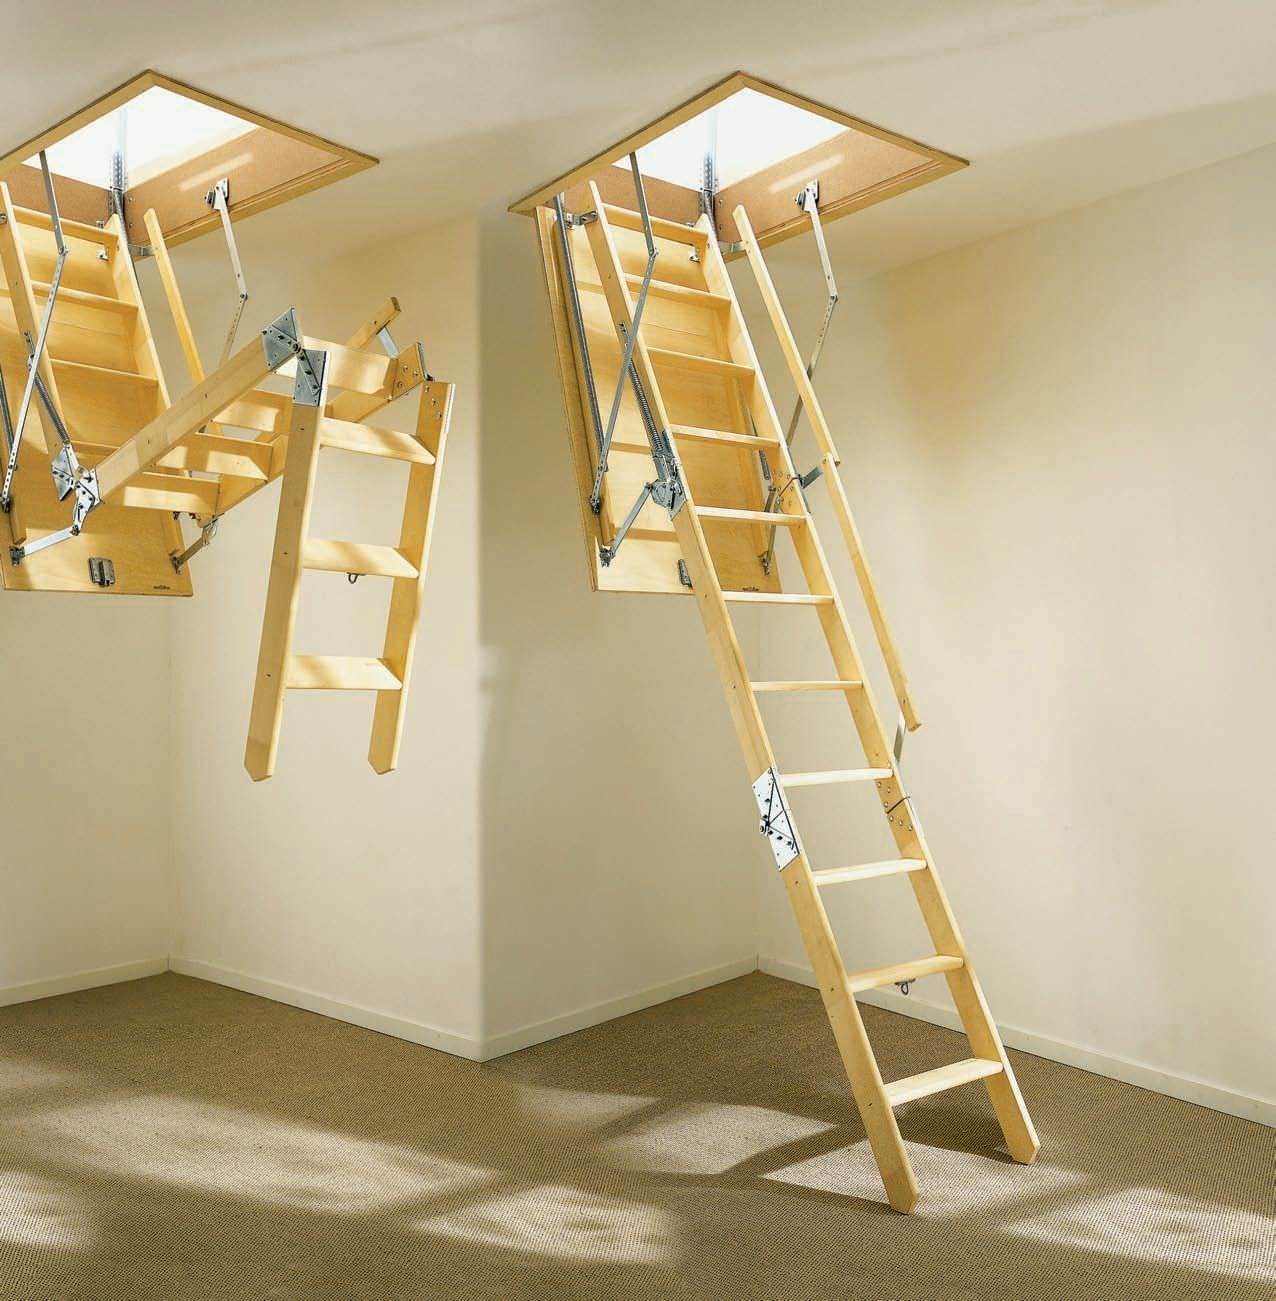 54 Folding Ladder For Attic Access Folding Attic Access Stairs With Size  1276 X 1301